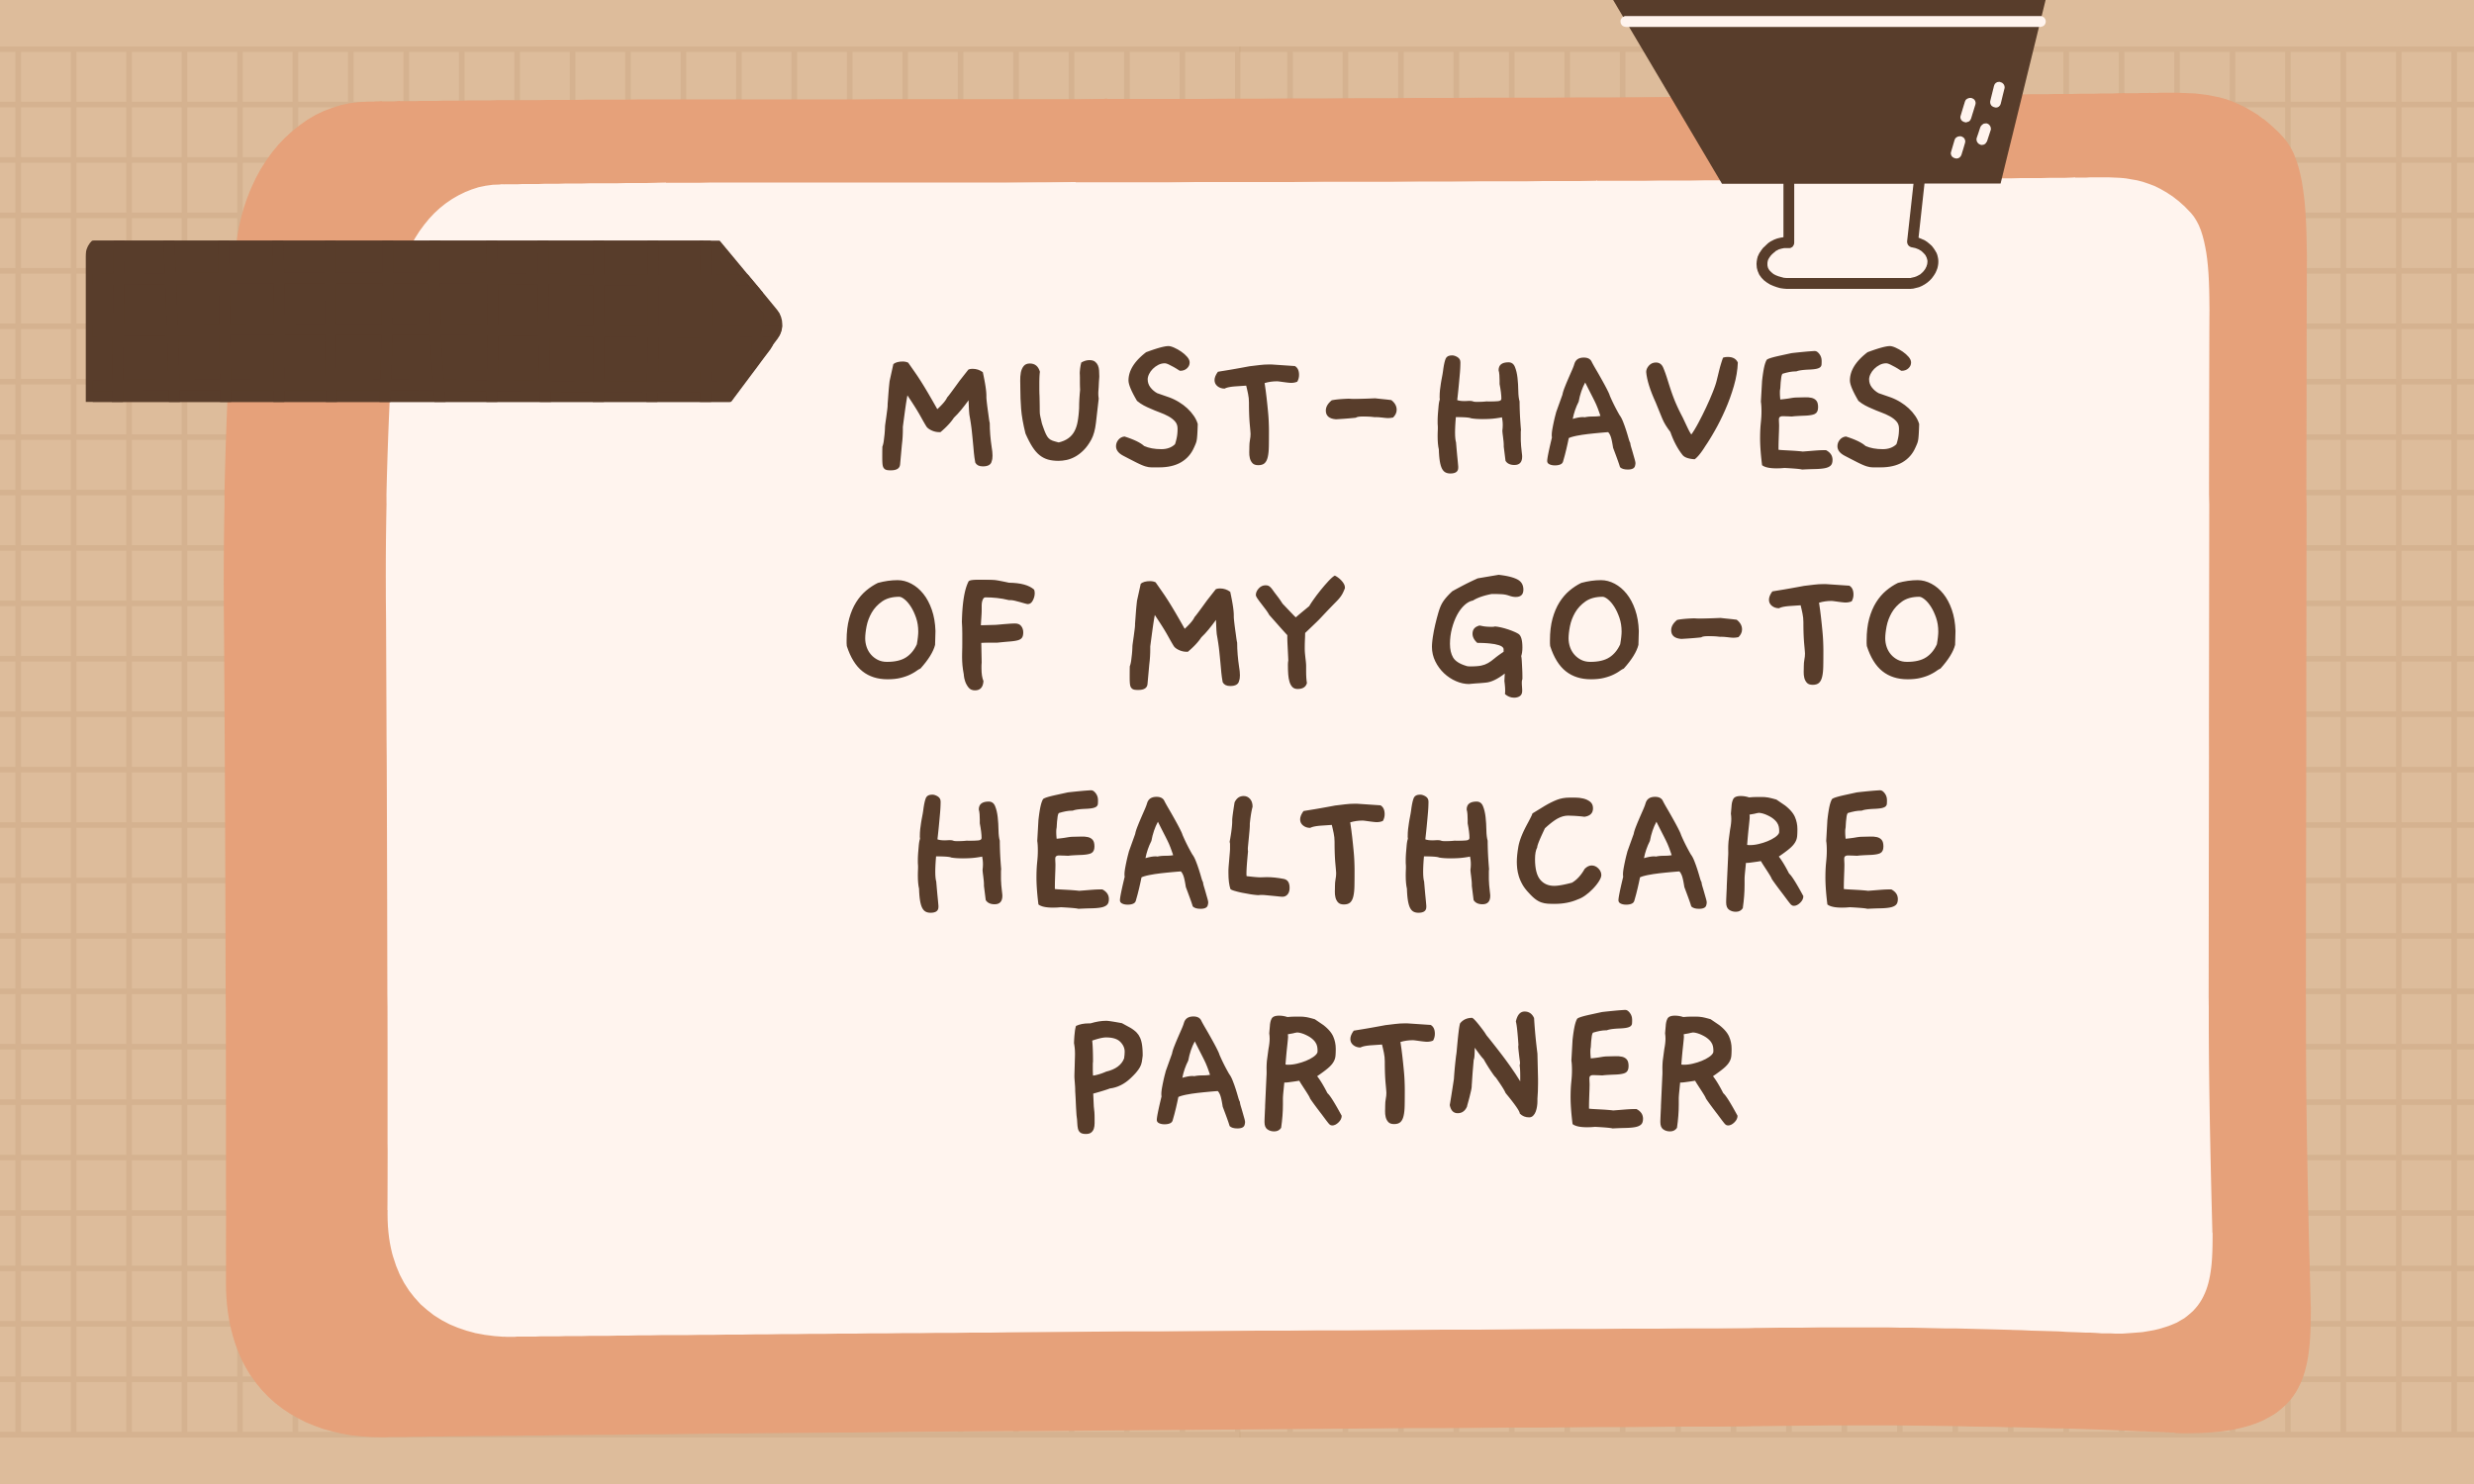 Must-Haves-of-My-Go-To-Healthcare-Partner